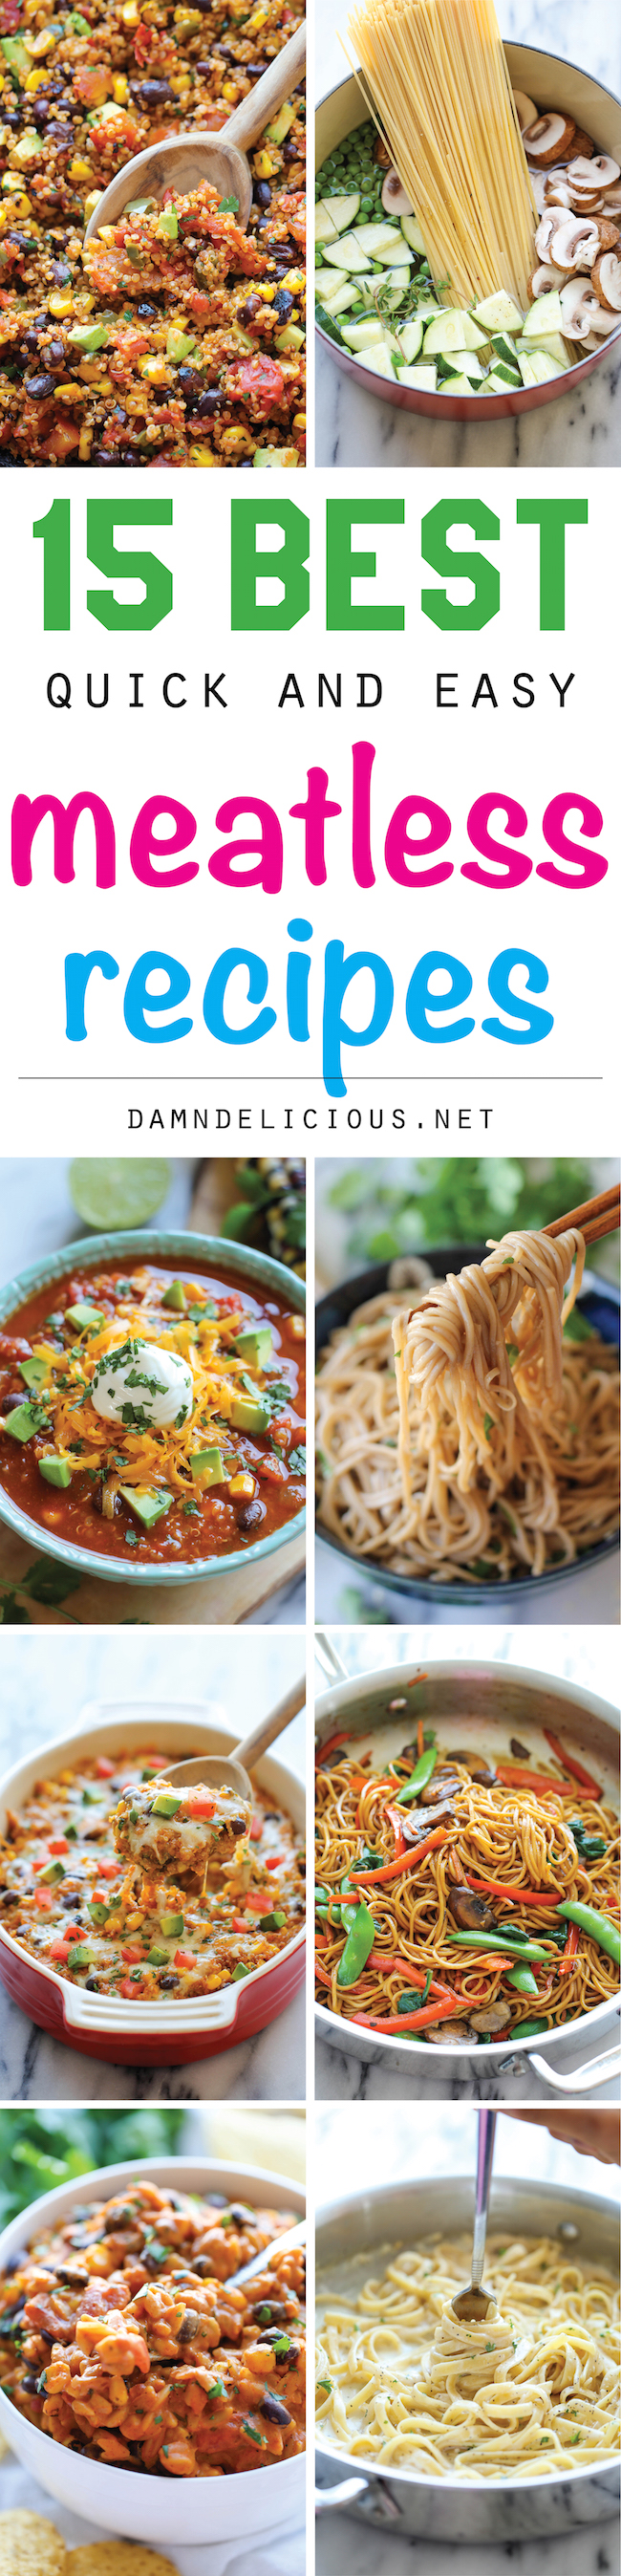 Easy meatless meals recipes